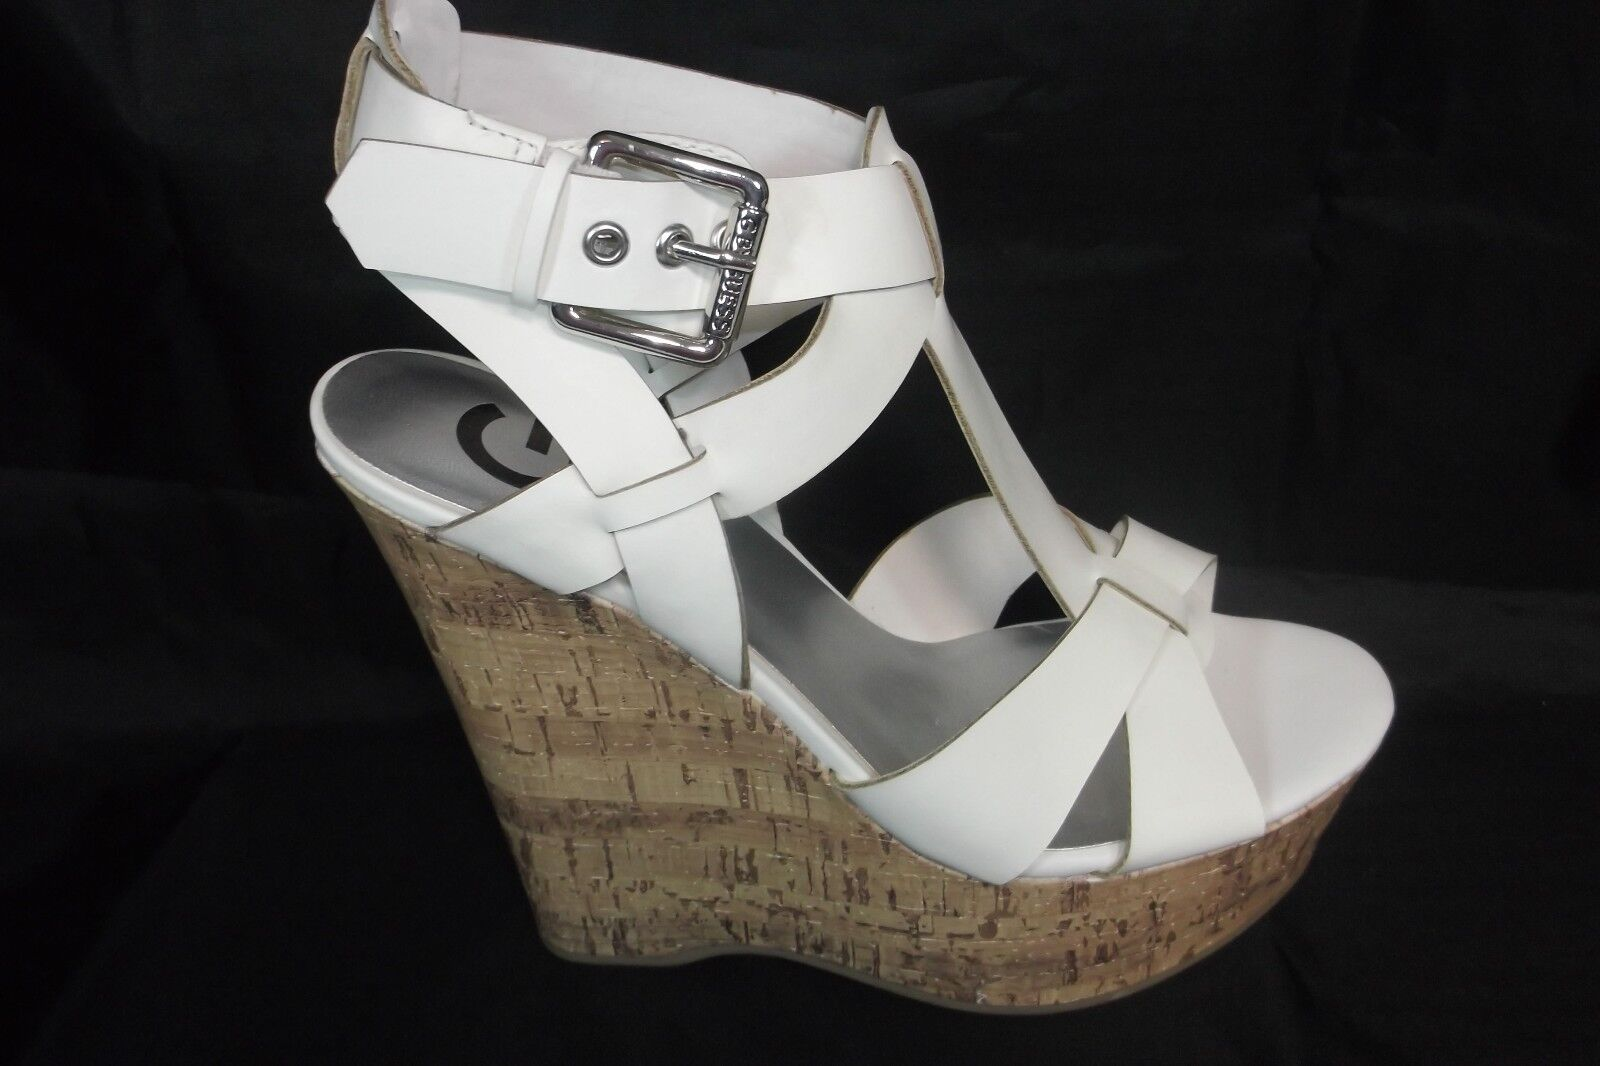 GUESS G BY GUESS GG ENTRY WHITE WEDGE STRAPPY SANDALS 9M NEW NEW IN BOX